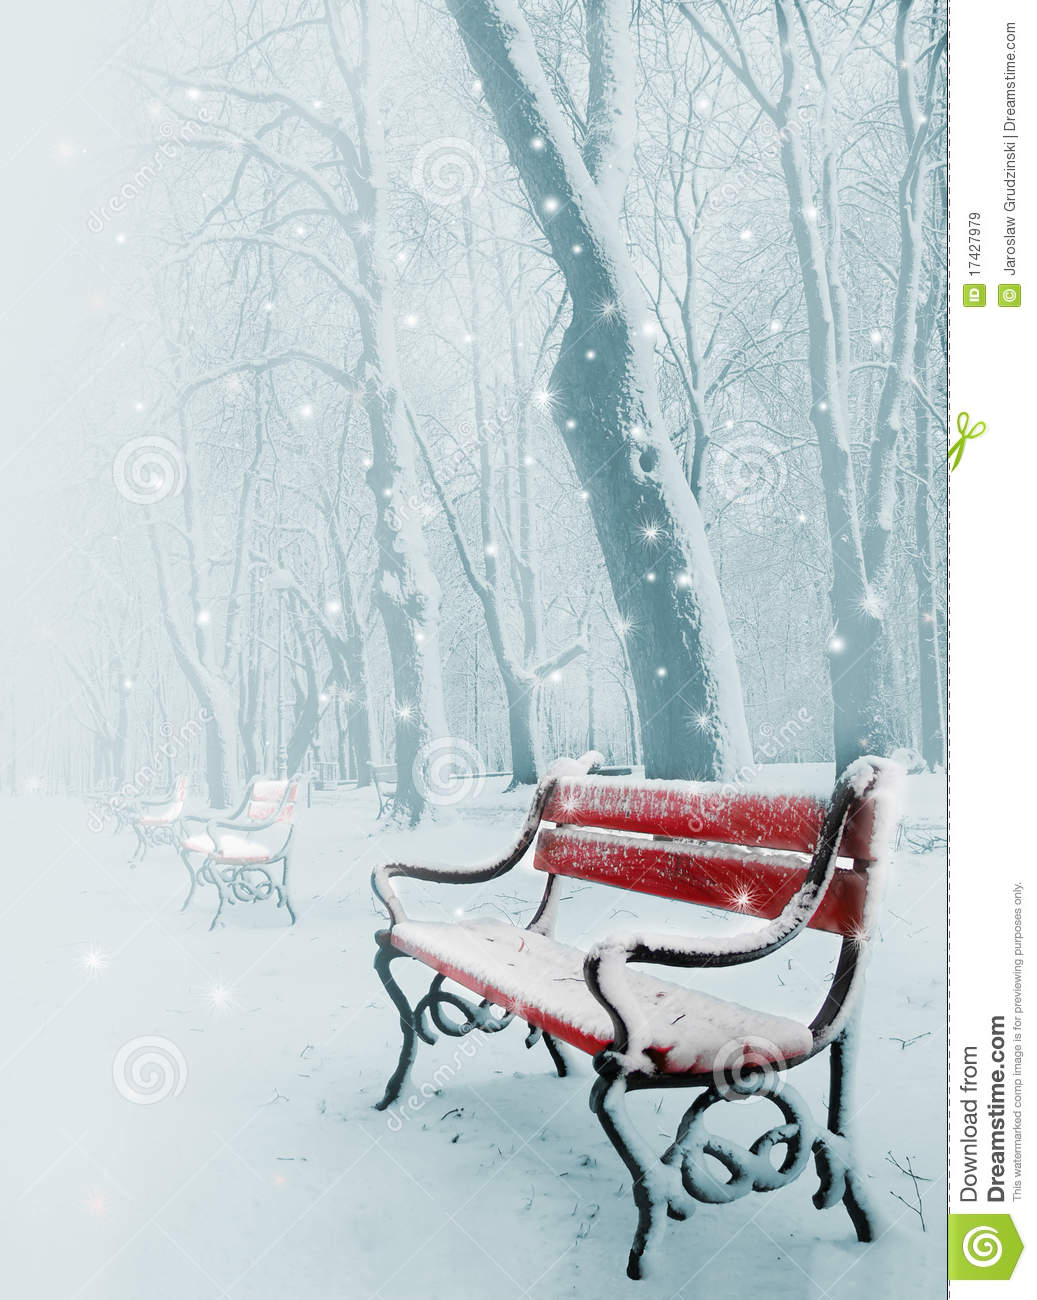 Row of red benches in the park in the snow in winter.